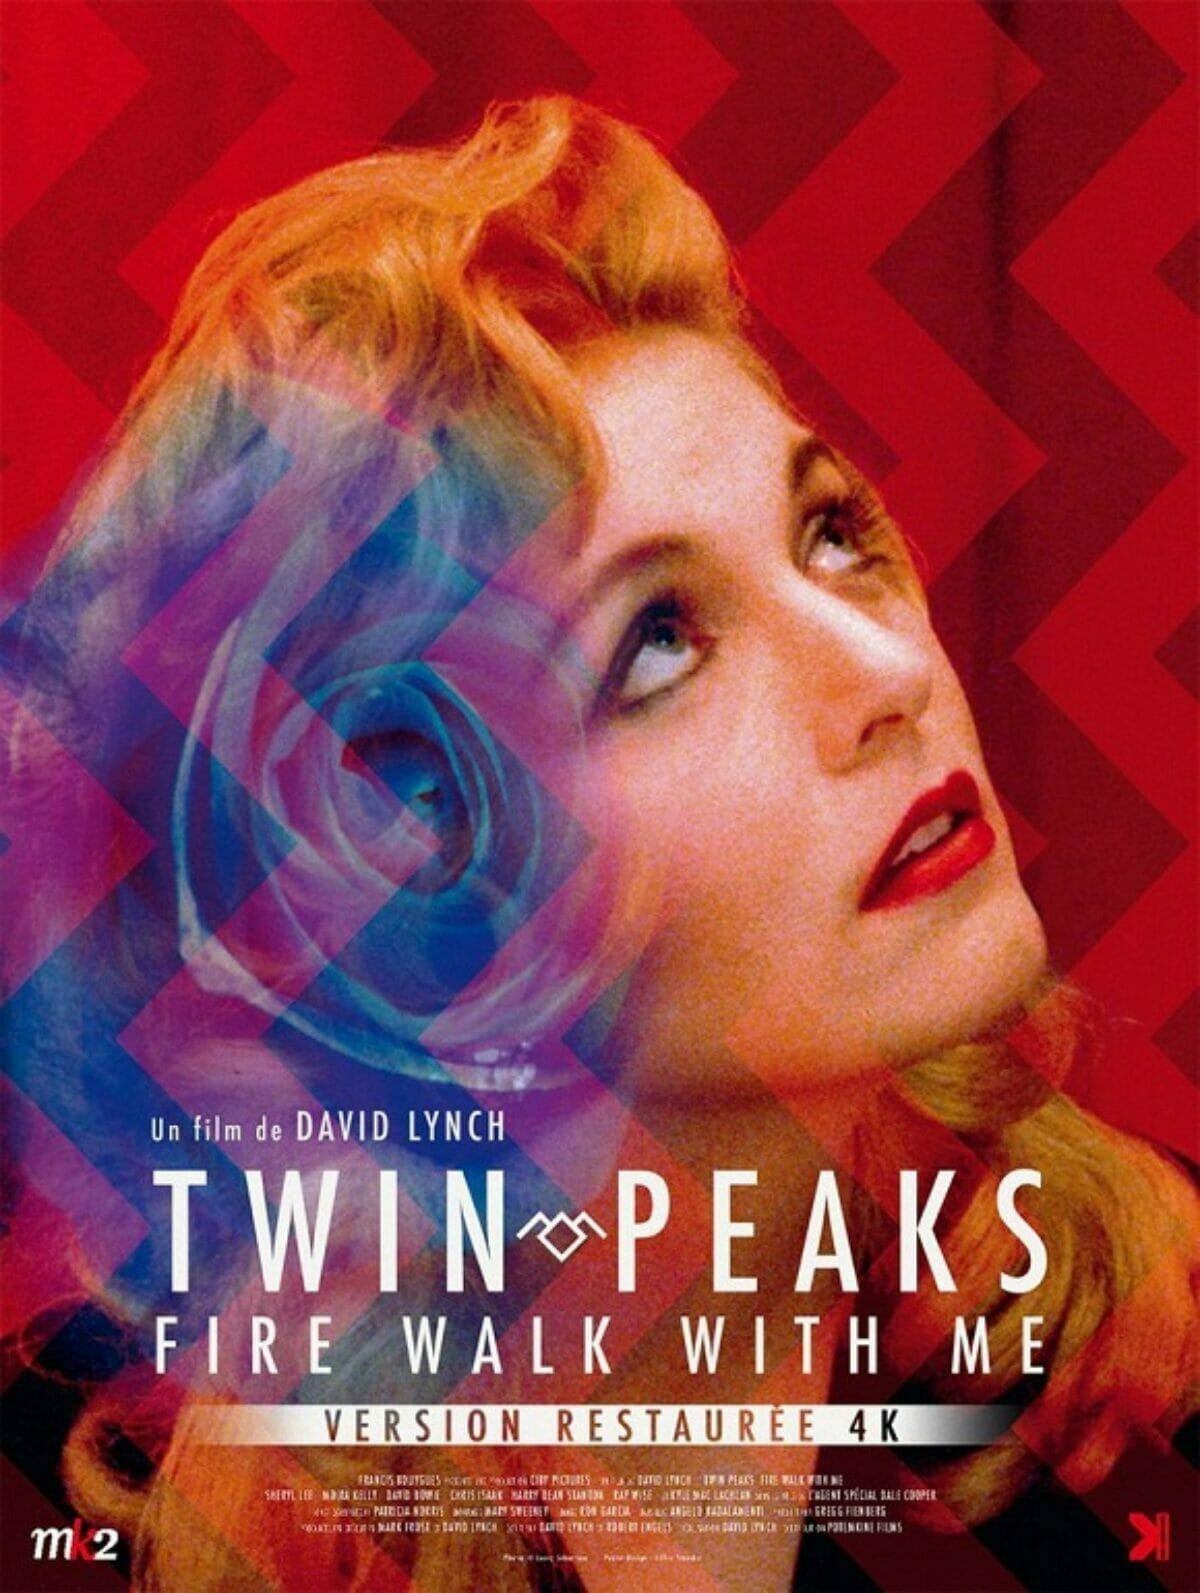 Twin-Peaks-fire-walk-with-me-poster